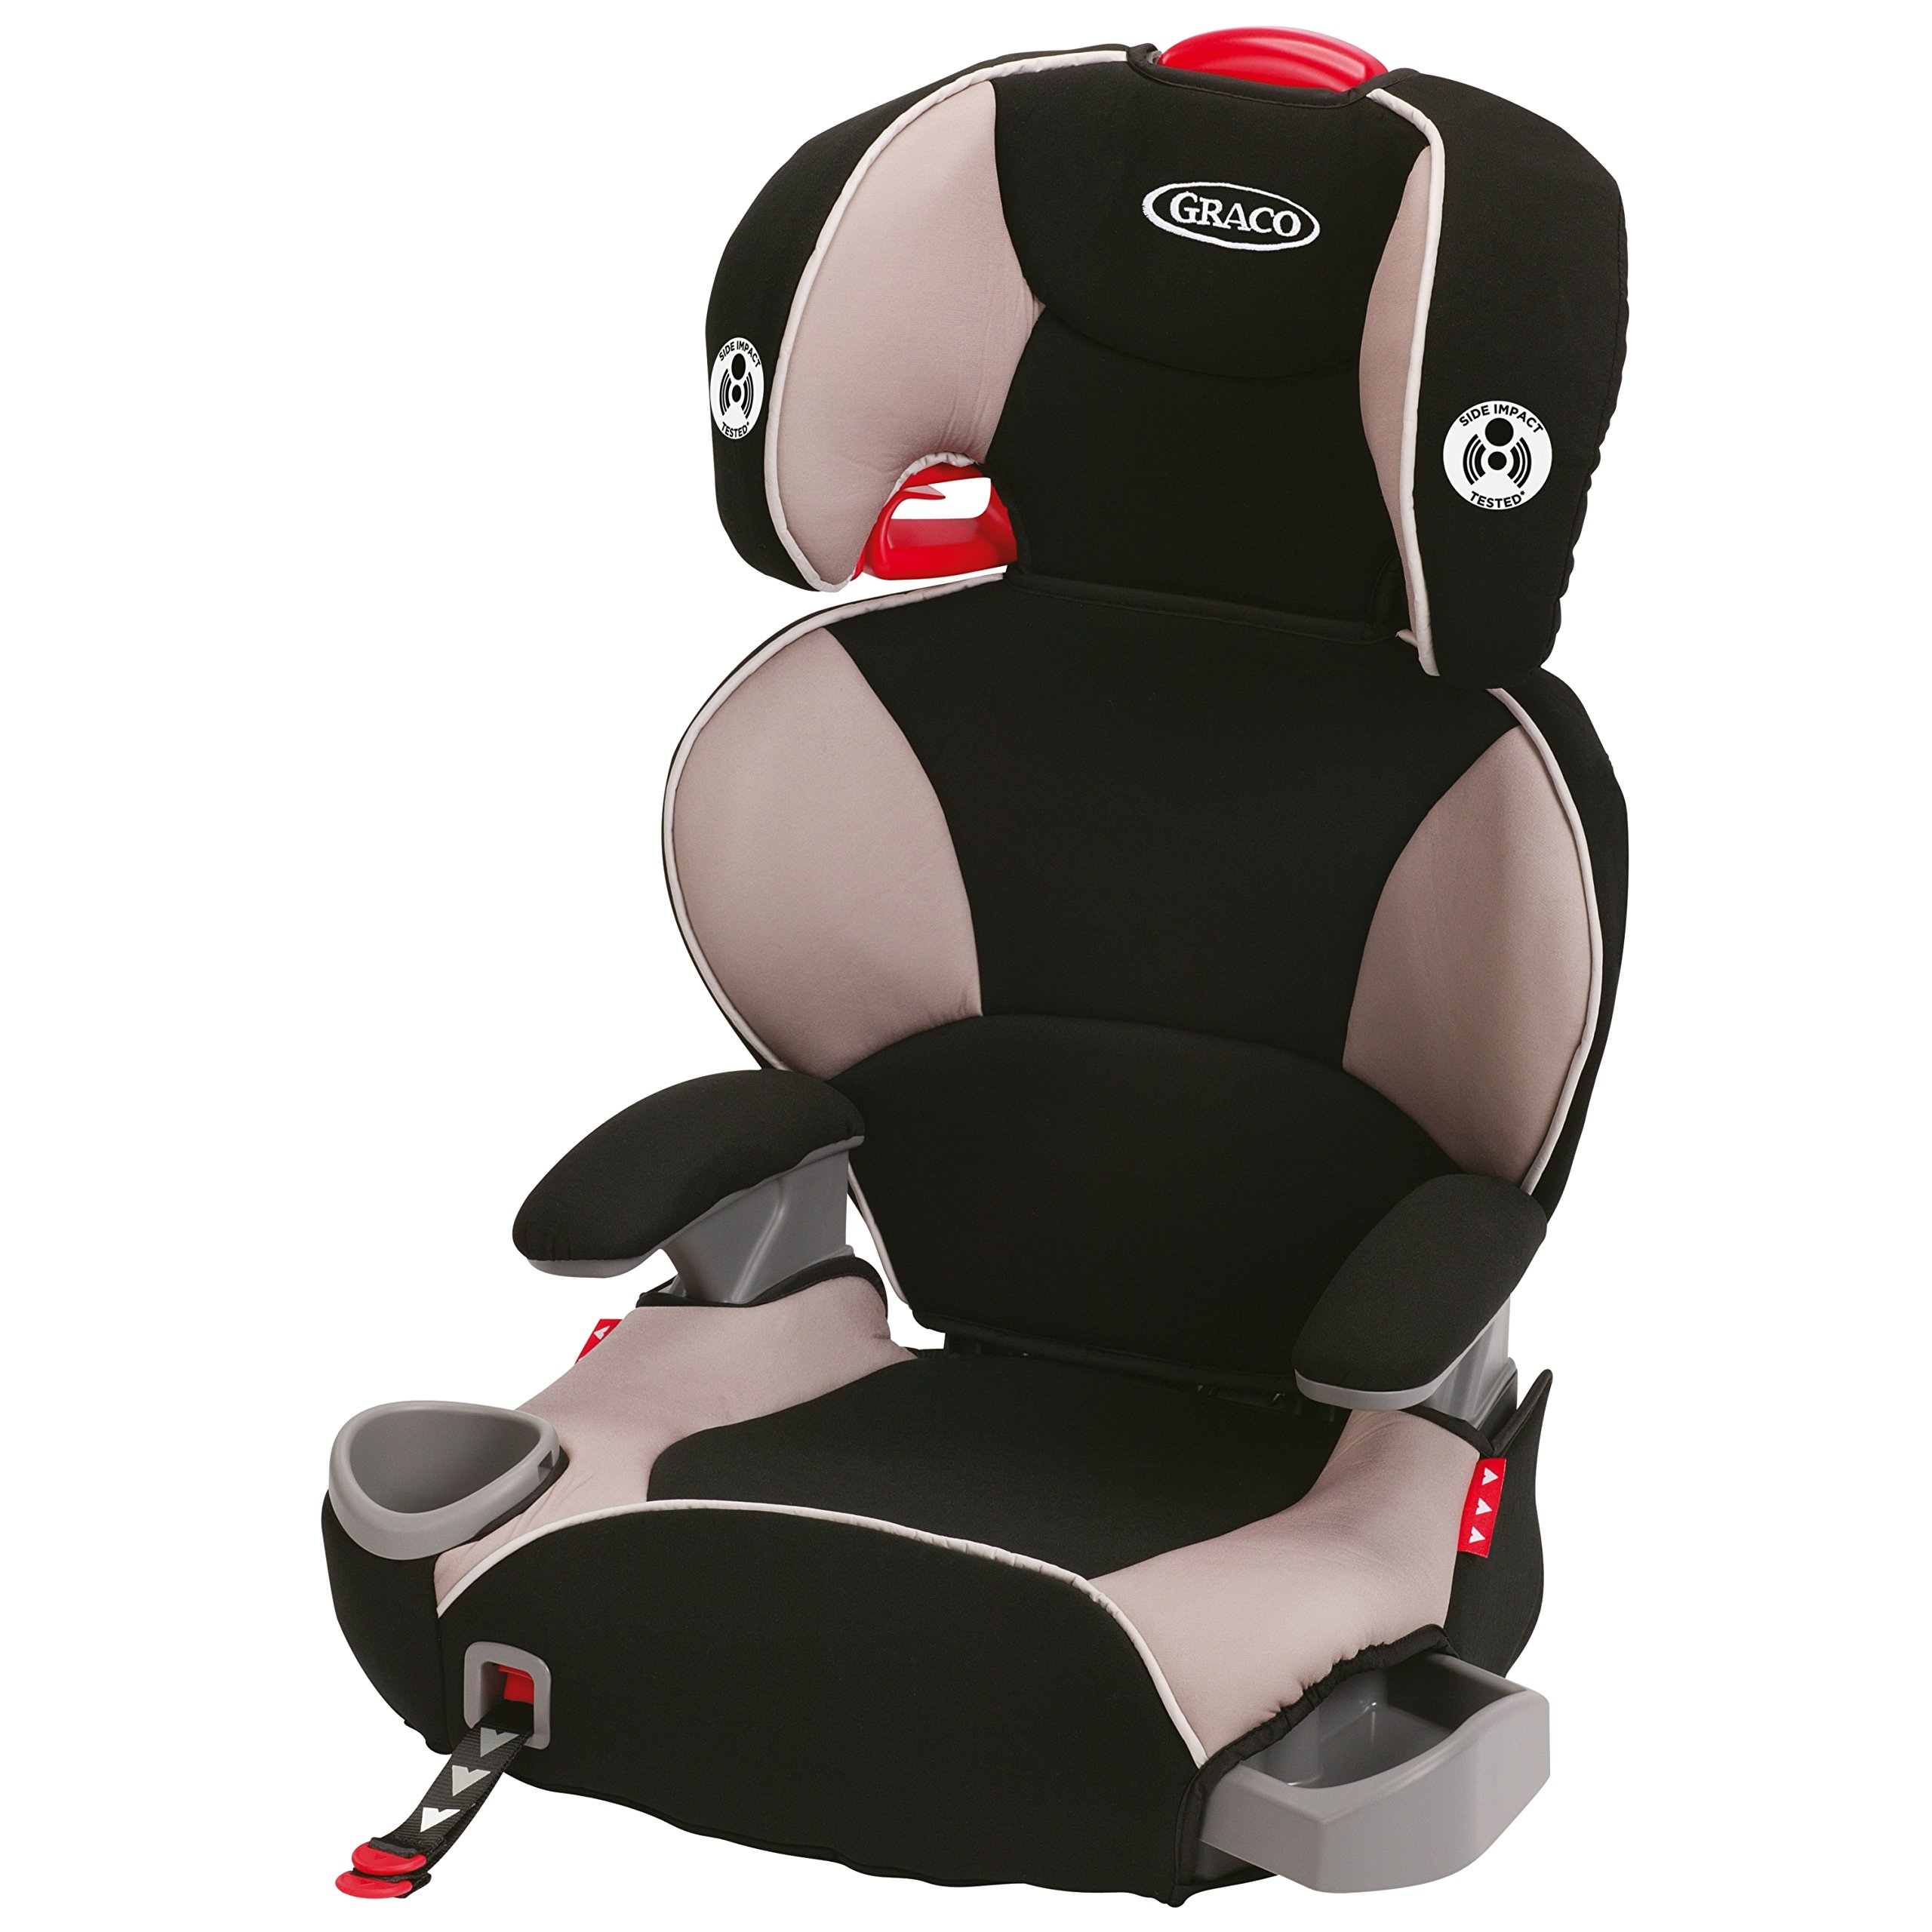 Graco Affix Highback Booster Car Seat with Latch System, Pierce, One Size